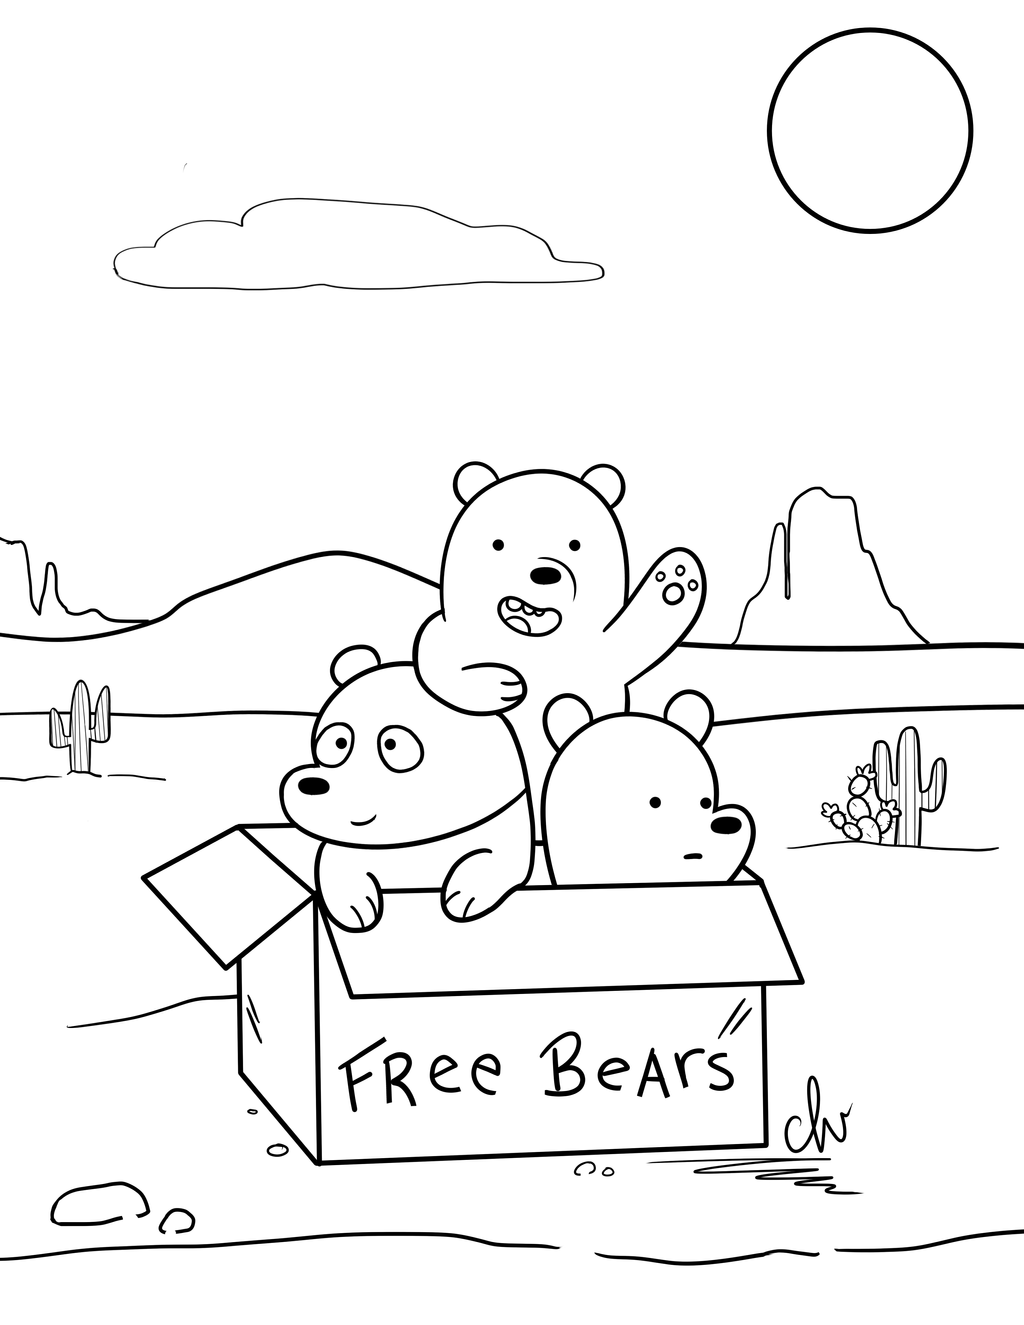 We Bare Bears Coloring Pages Printable